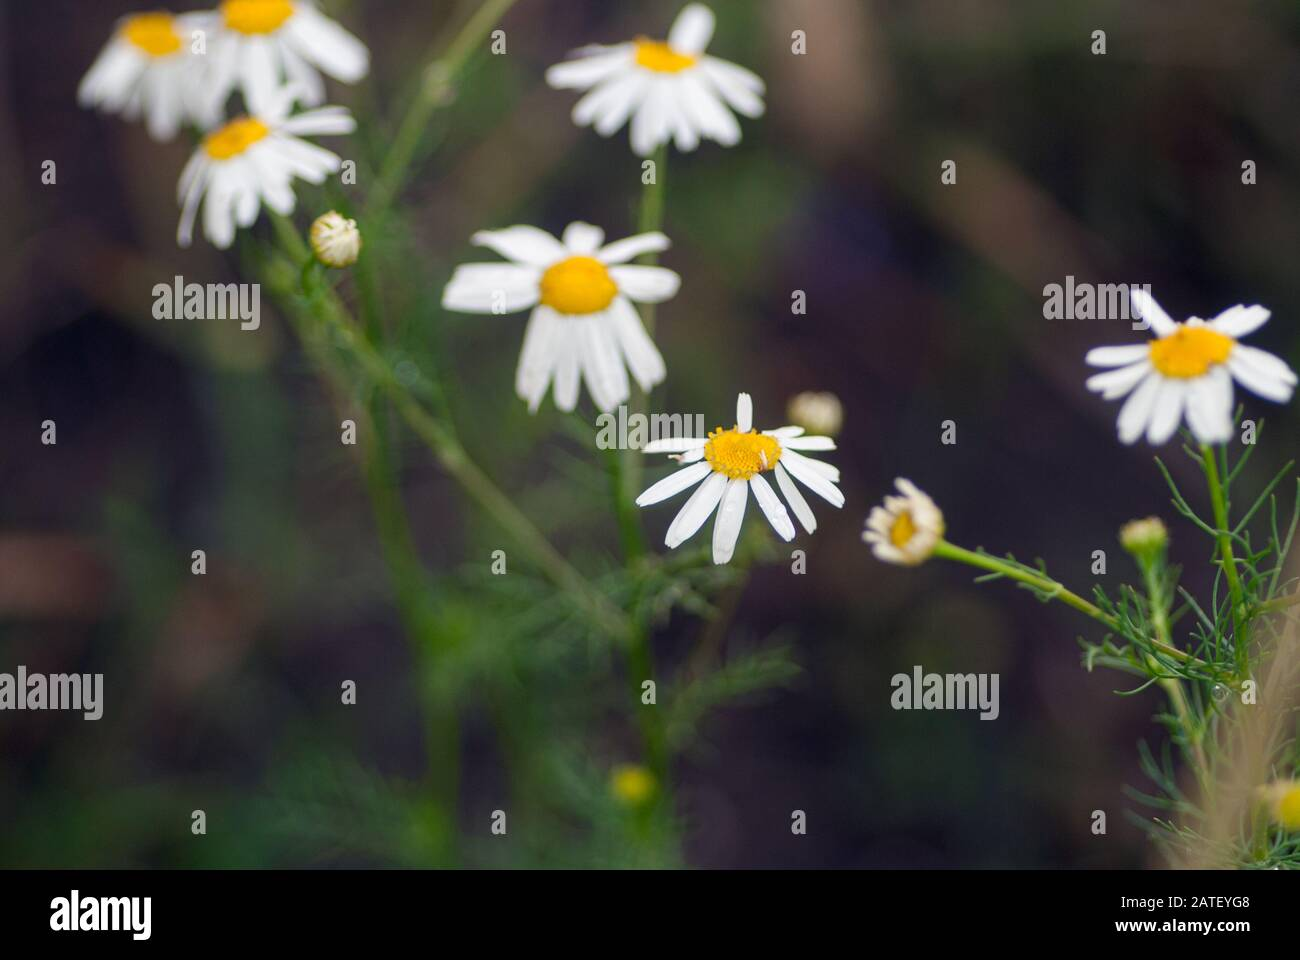 Field Camomiles Macro Shot The Concept Of Nature And Relaxation For Wallpaper Stock Photo Alamy